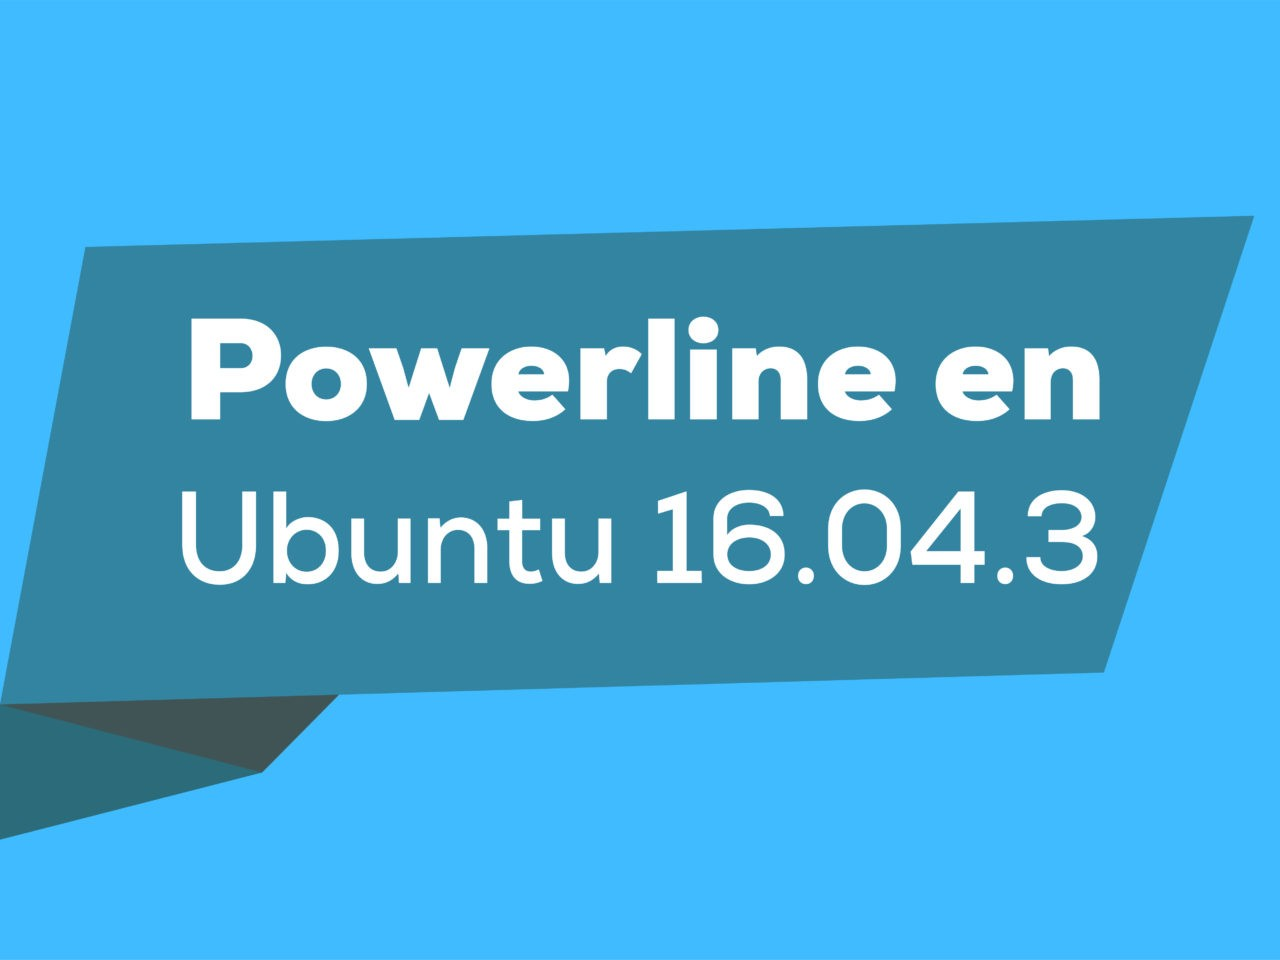 Powerline en Ubuntu 16.04.3